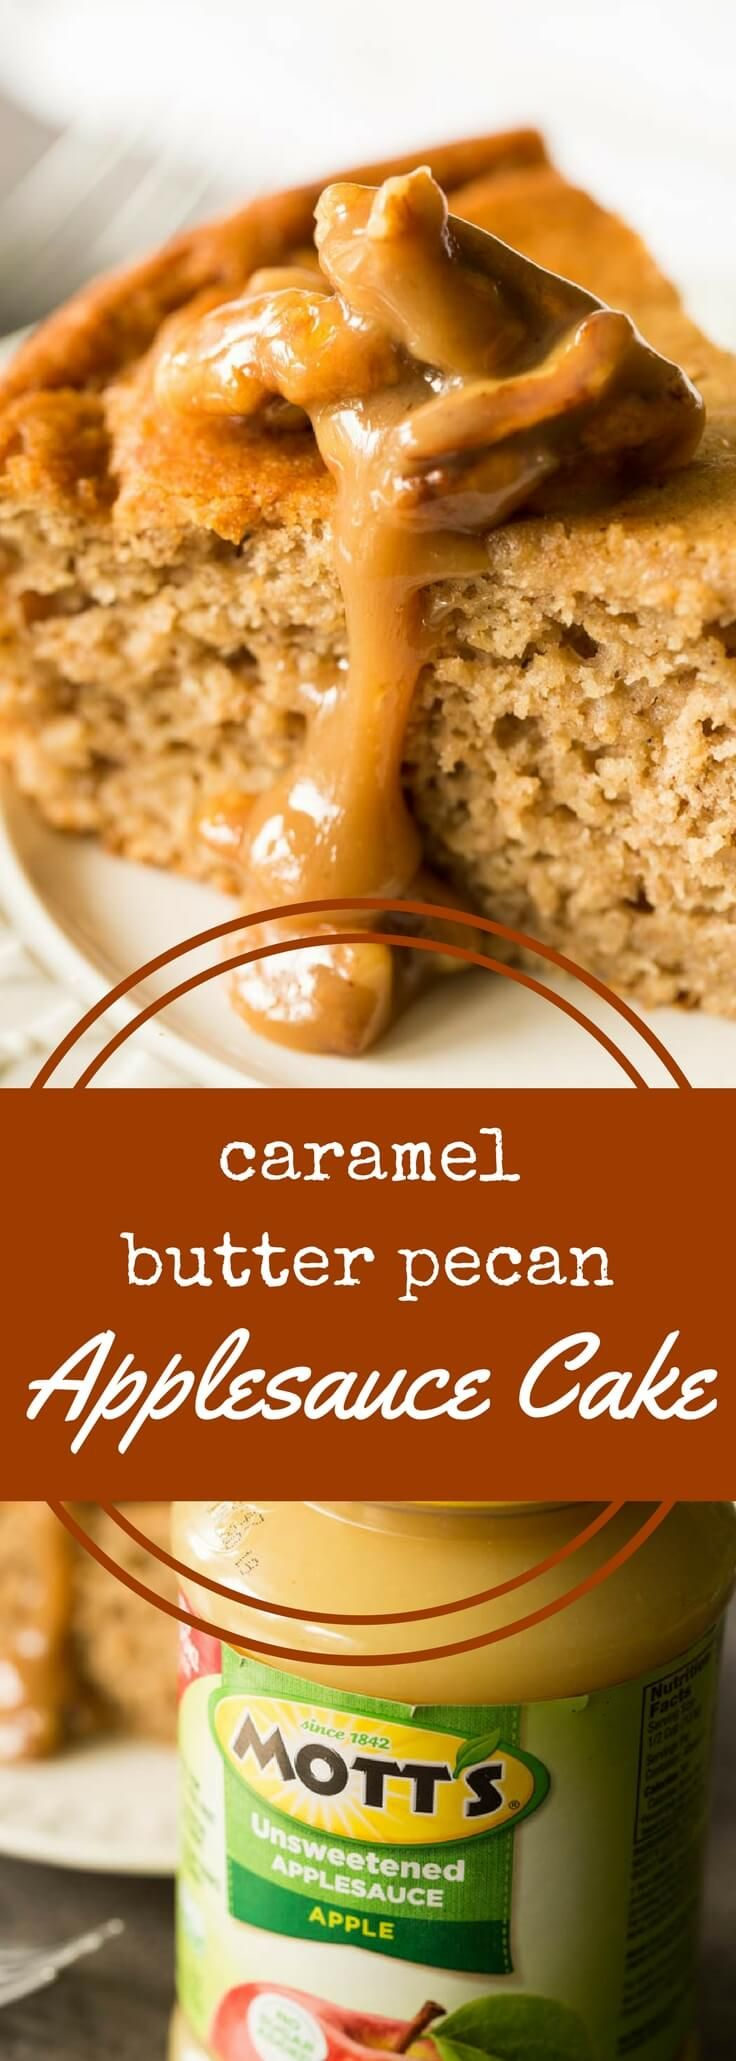 Caramel butter pecan applesauce cake sponsored by @Motts - This spiced applesauce cake topped with gooey caramel butter pecan sauce is a must-have for fall and winter. It's delicious and completely gluten free.